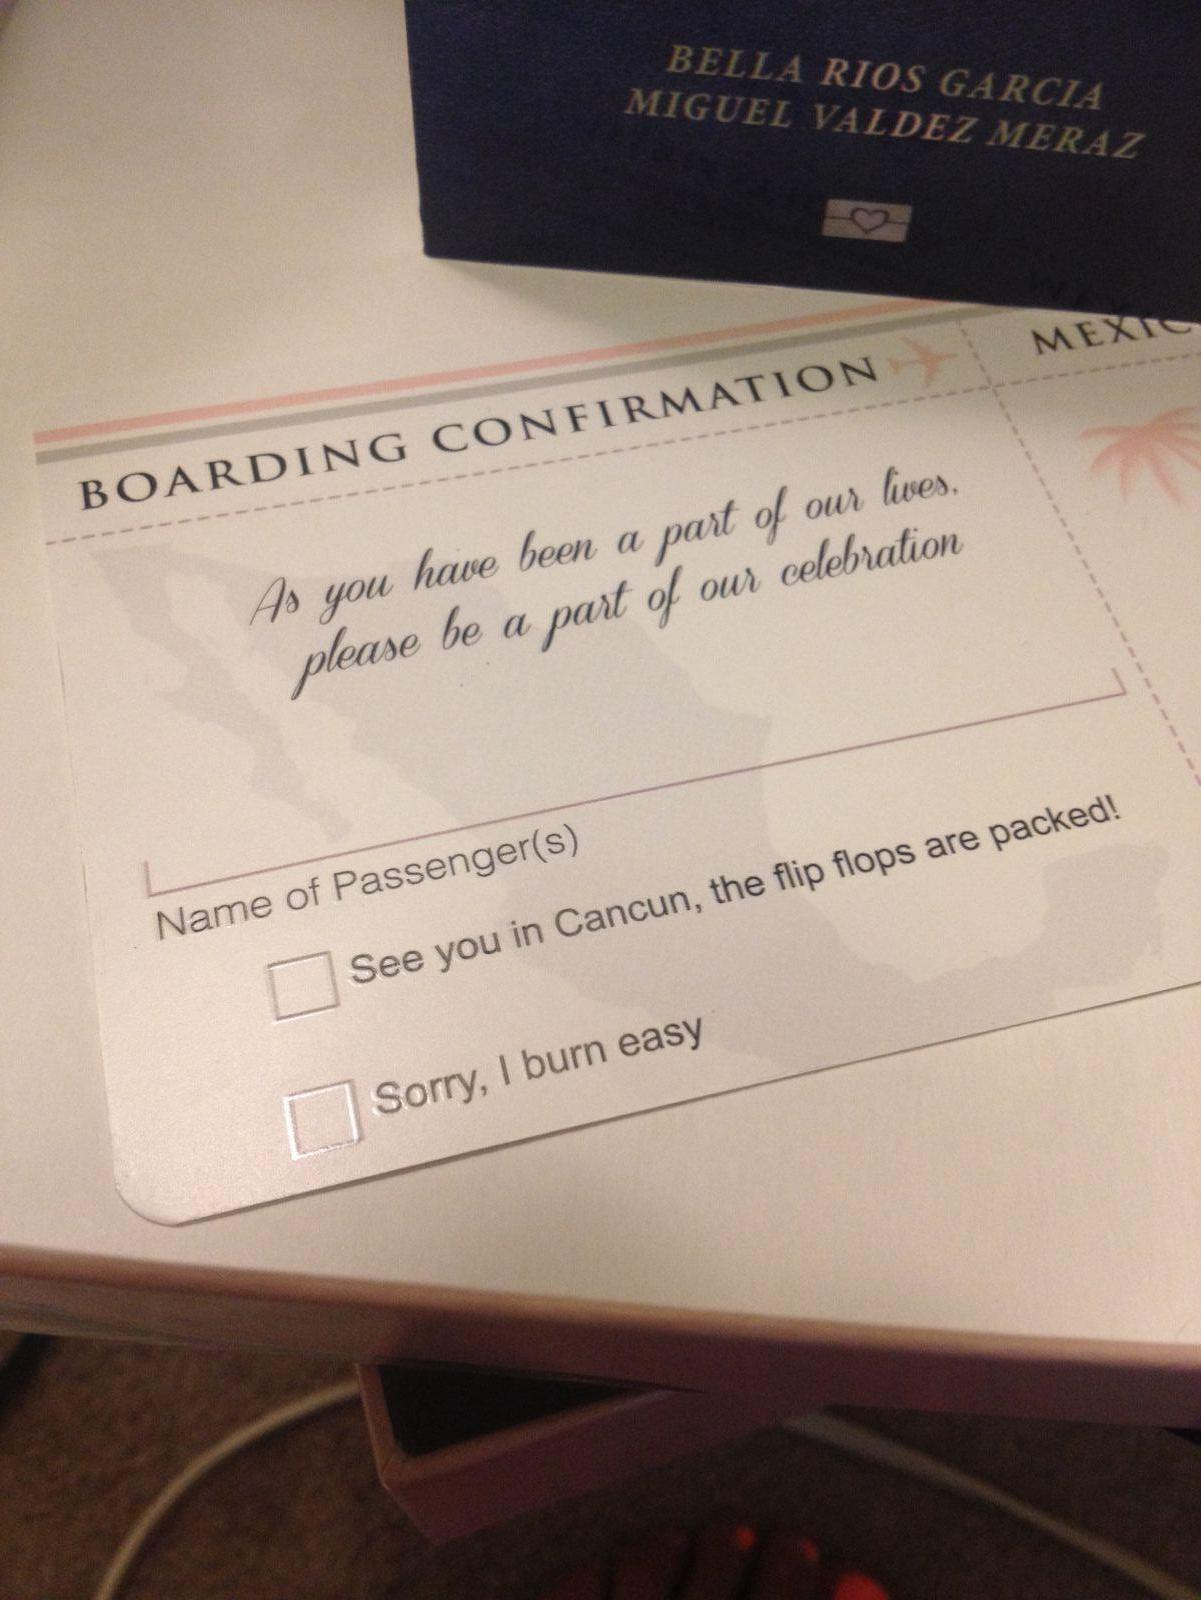 Our guests boarding pass